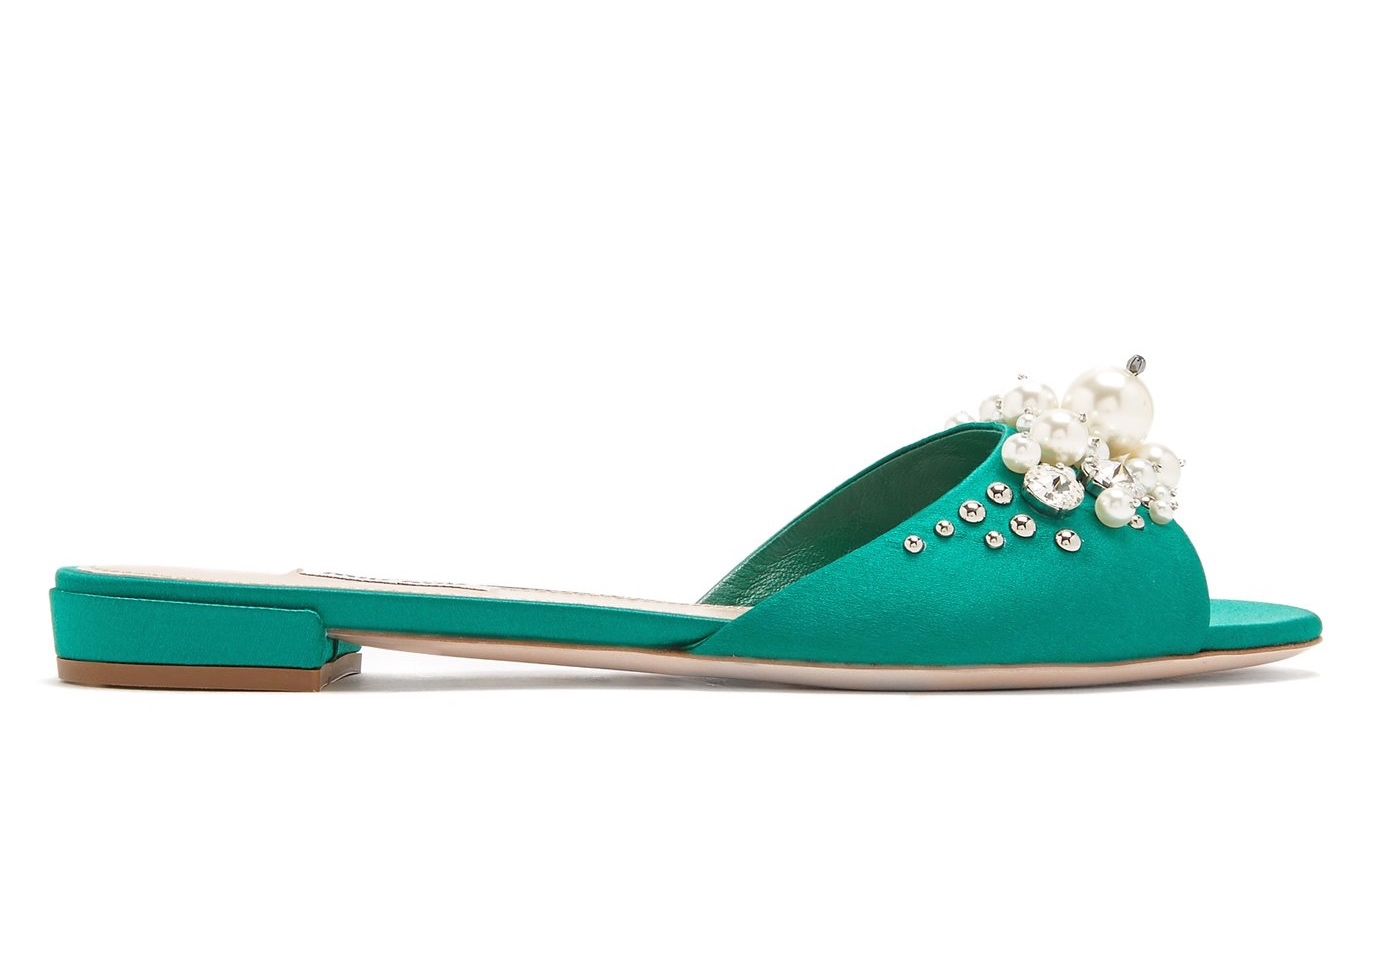 Miu Miu Teal Embellished Slides